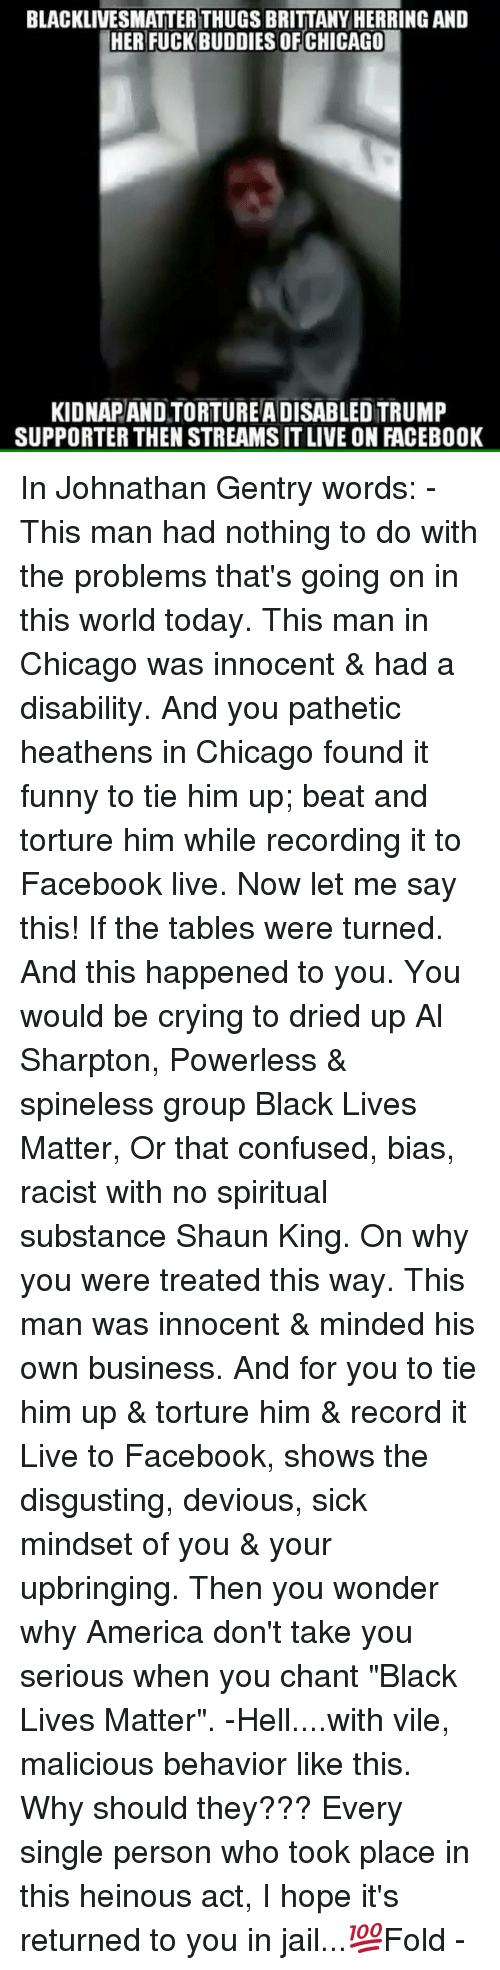 """Black Live Matter: BLACKLIVESMATTERTHUGS BRITTANY HERRING AND  HER FUCK BUDDIES OF CHICAGO  KIDNAPANDTORTUREADISABLED TRUMP  SUPPORTER THEN STREAMSITLIVE ON FACEBOOK In Johnathan Gentry words: - This man had nothing to do with the problems that's going on in this world today. This man in Chicago was innocent & had a disability. And you pathetic heathens in Chicago found it funny to tie him up; beat and torture him while recording it to Facebook live. Now let me say this! If the tables were turned. And this happened to you. You would be crying to dried up Al Sharpton, Powerless & spineless group Black Lives Matter, Or that confused, bias, racist with no spiritual substance Shaun King. On why you were treated this way. This man was innocent & minded his own business. And for you to tie him up & torture him & record it Live to Facebook, shows the disgusting, devious, sick mindset of you & your upbringing. Then you wonder why America don't take you serious when you chant """"Black Lives Matter"""". -Hell....with vile, malicious behavior like this. Why should they??? Every single person who took place in this heinous act, I hope it's returned to you in jail...💯Fold -"""